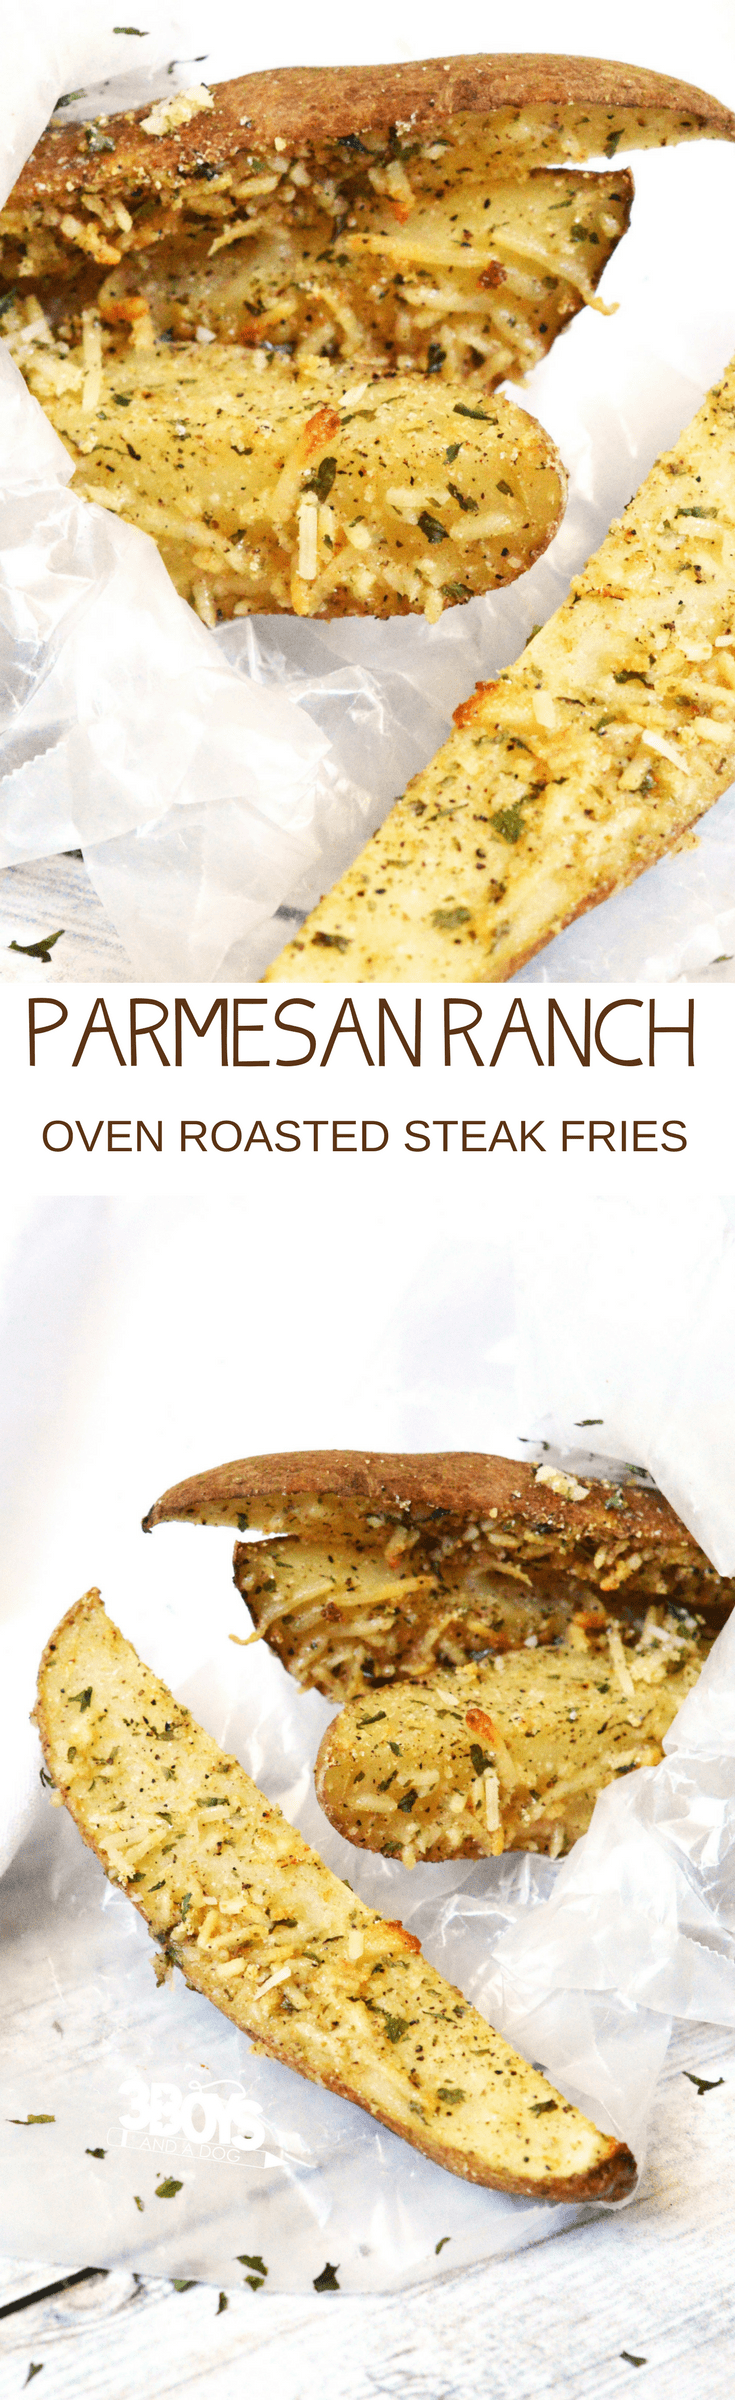 Mix up dinner tonight with this easy to make and simply delicious Parmesan Steak Fries with Ranch recipe! These Parmesan Steak Fries with Ranch are delicious and fairly healthy when roasted in the oven.